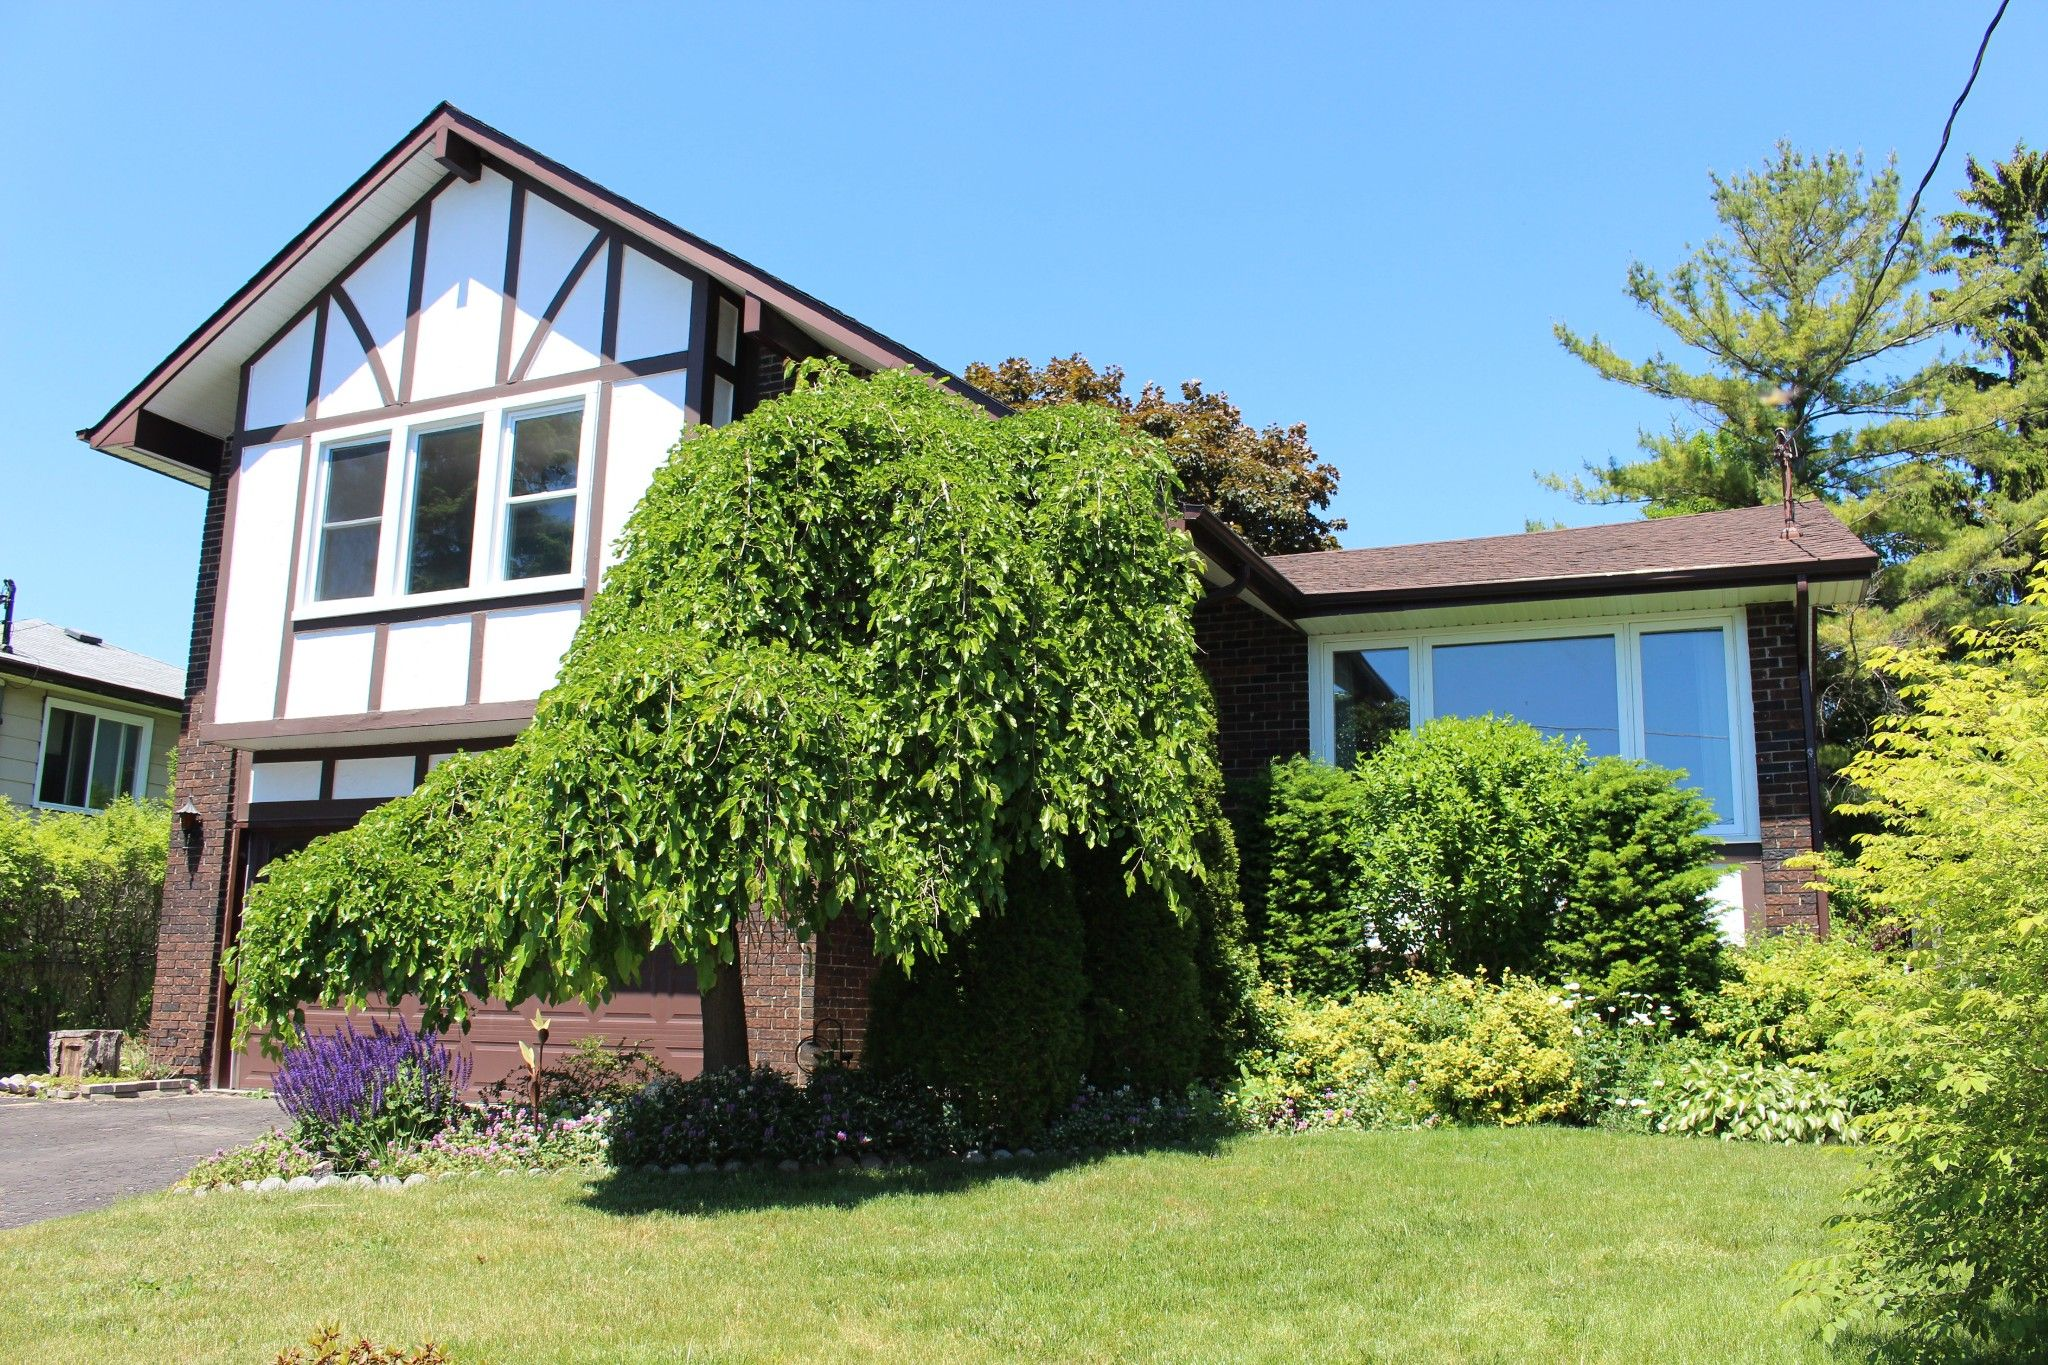 Main Photo: 746 Northwood Drive in Cobourg: House for sale : MLS®# 267464